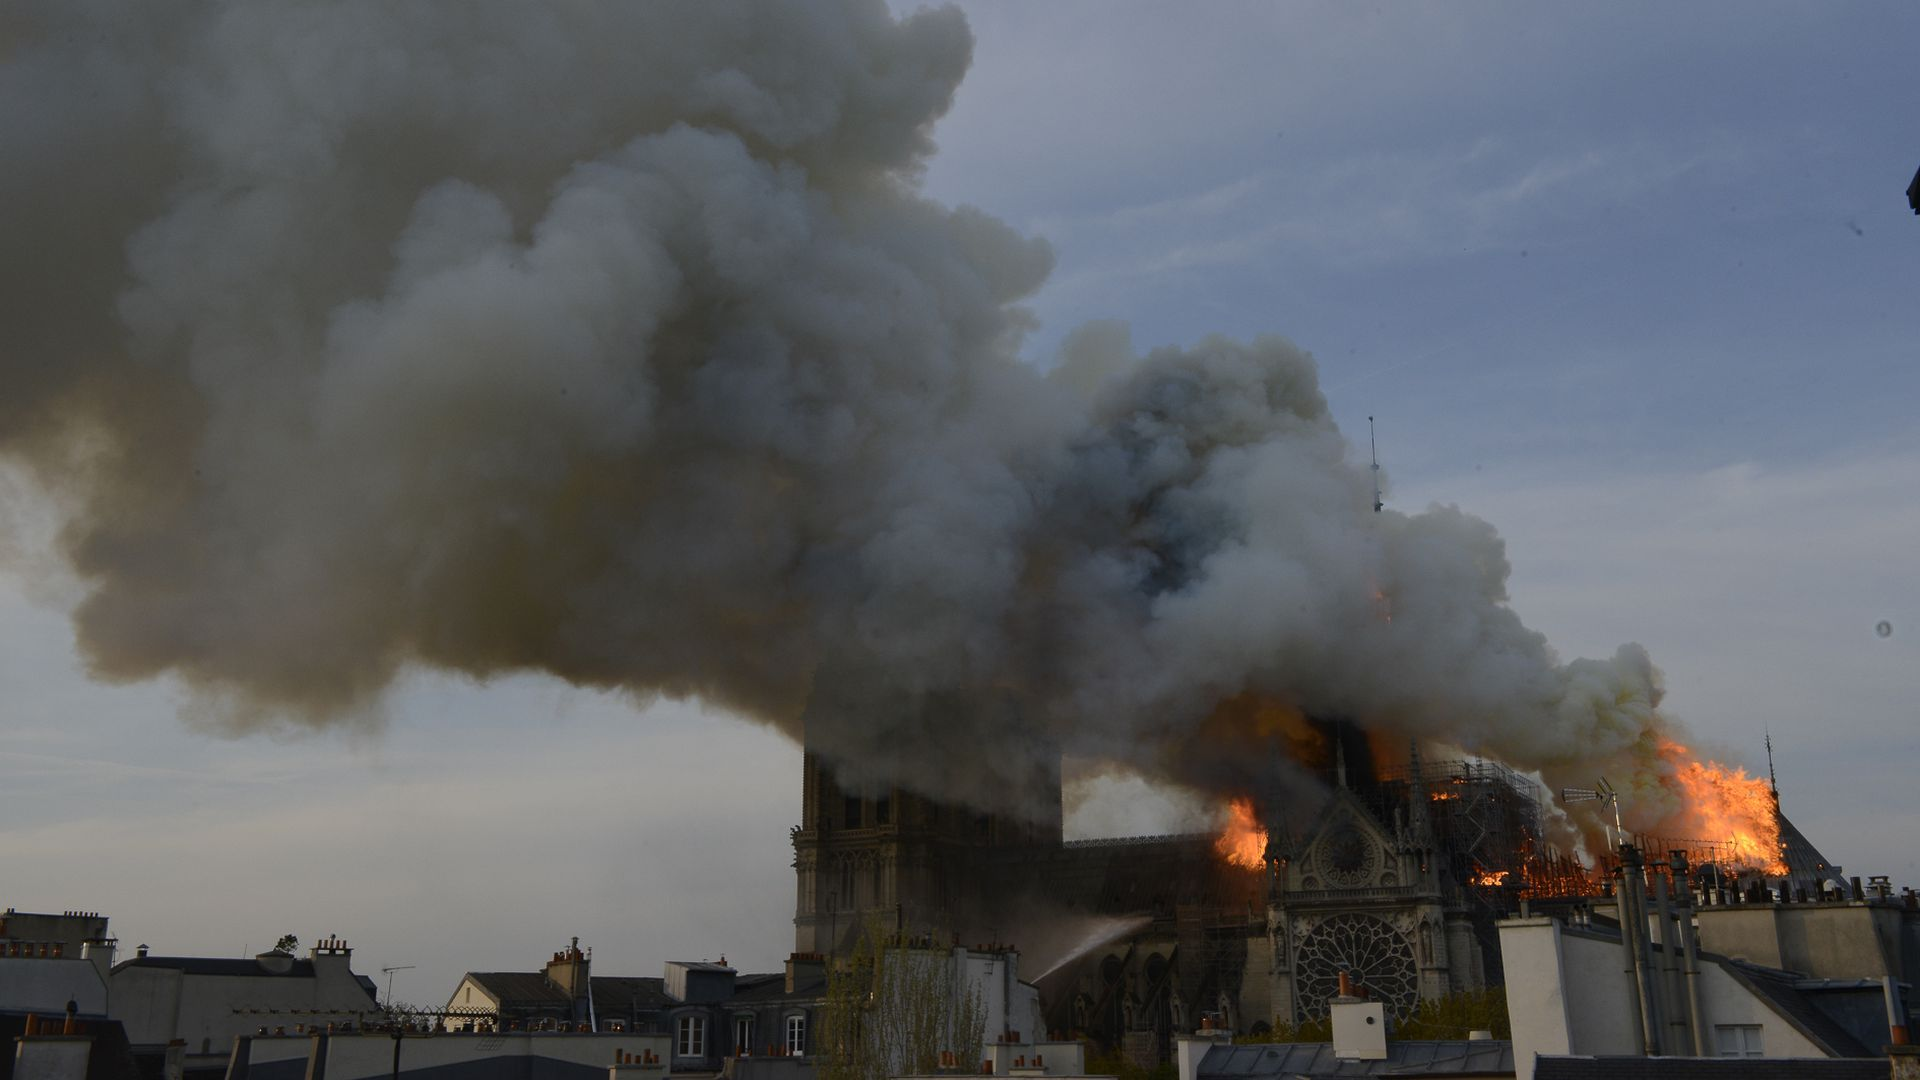 An image of the fire at Notre Dame in Paris